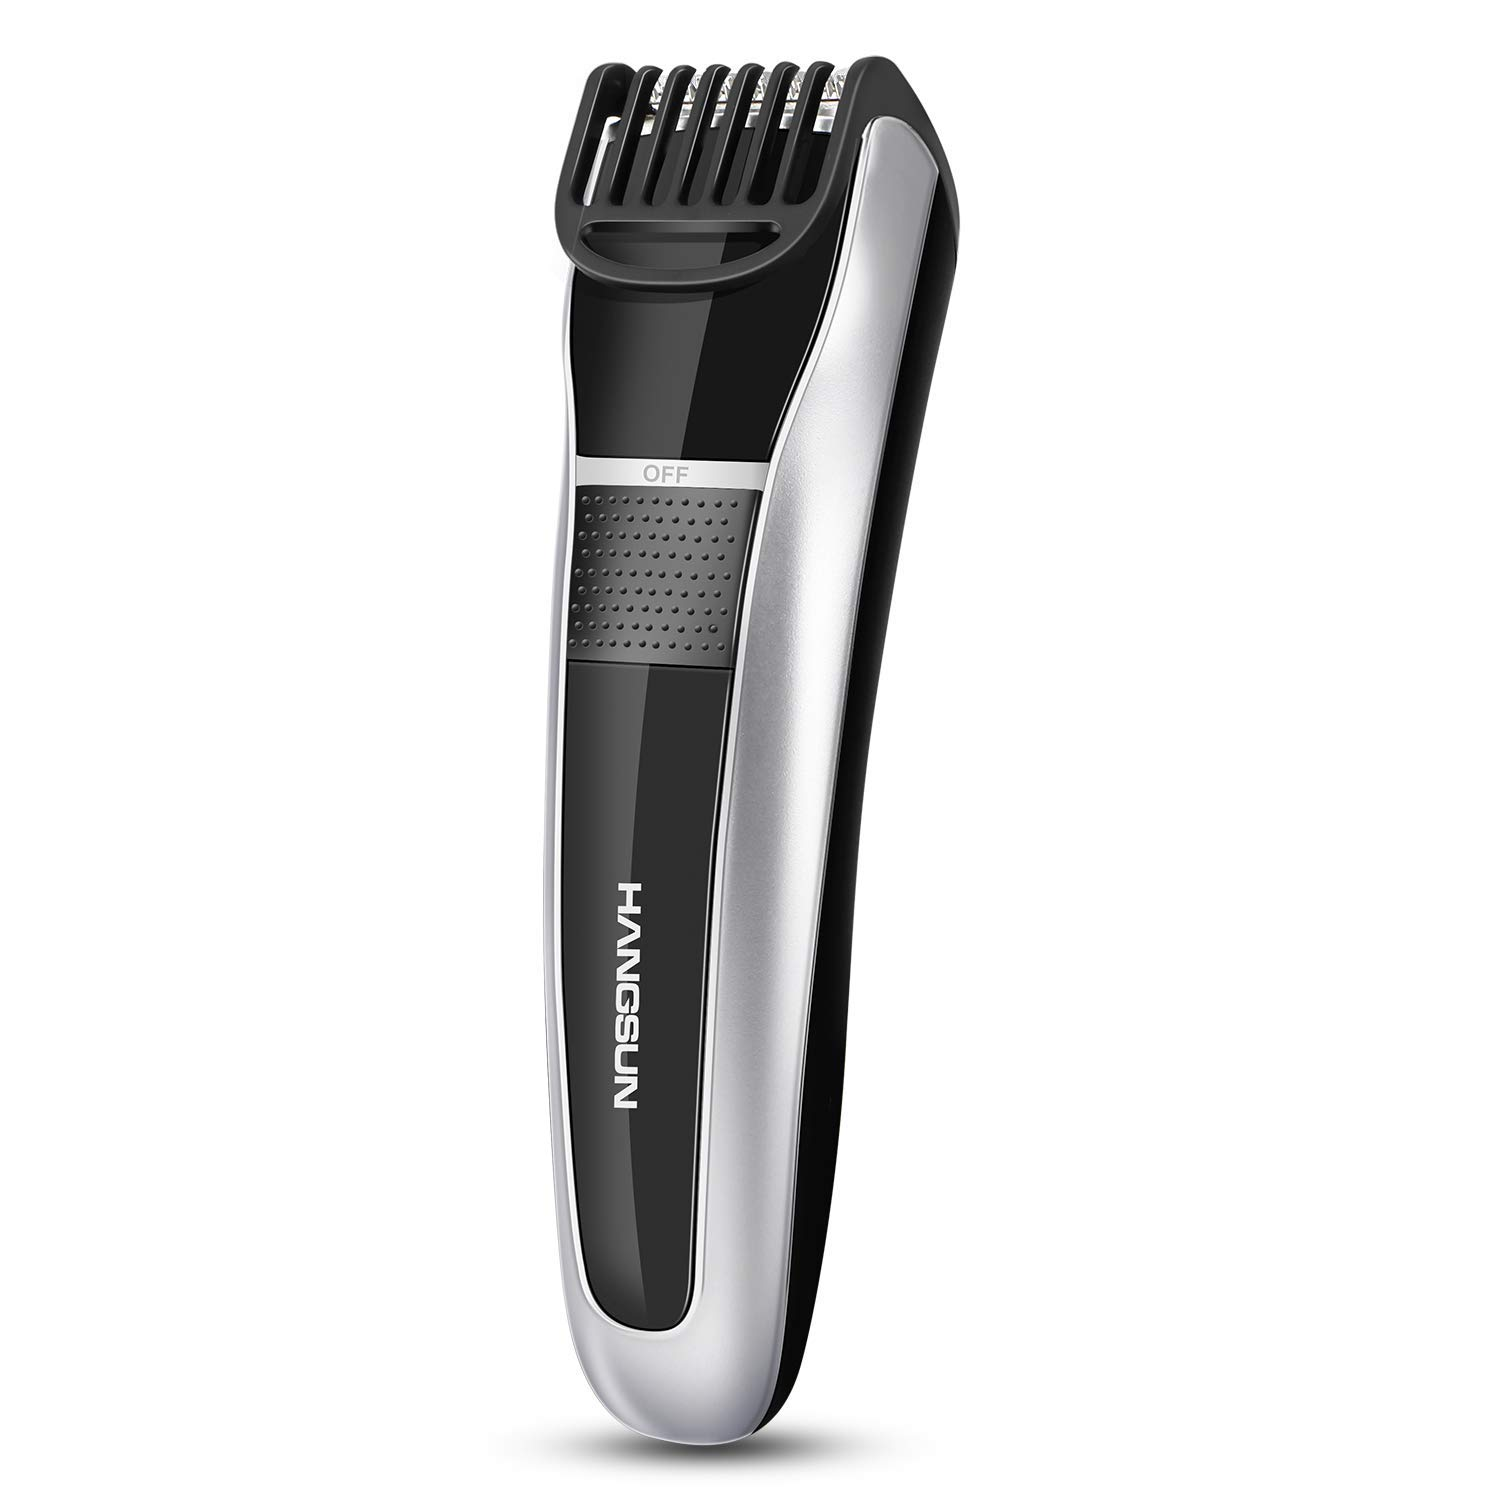 Hangsun Beard Trimmer Hair Clippers Rechargeable Stubble Trimmers Cordless Body Groomer